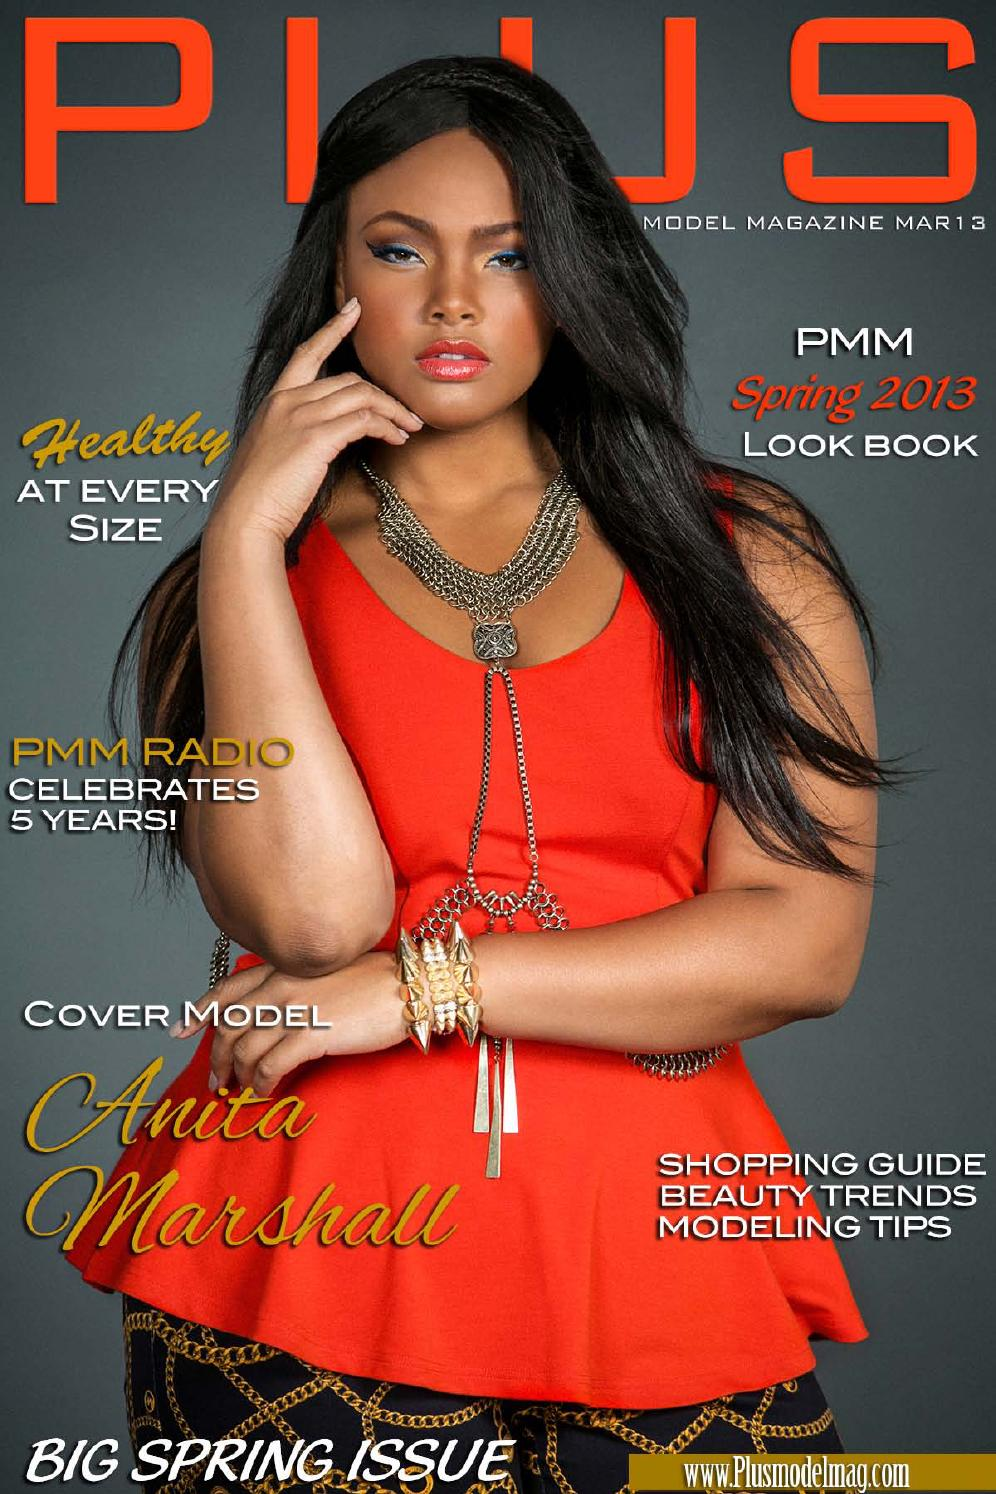 Model Magazines List: March 2013 Issue By PLUS Model